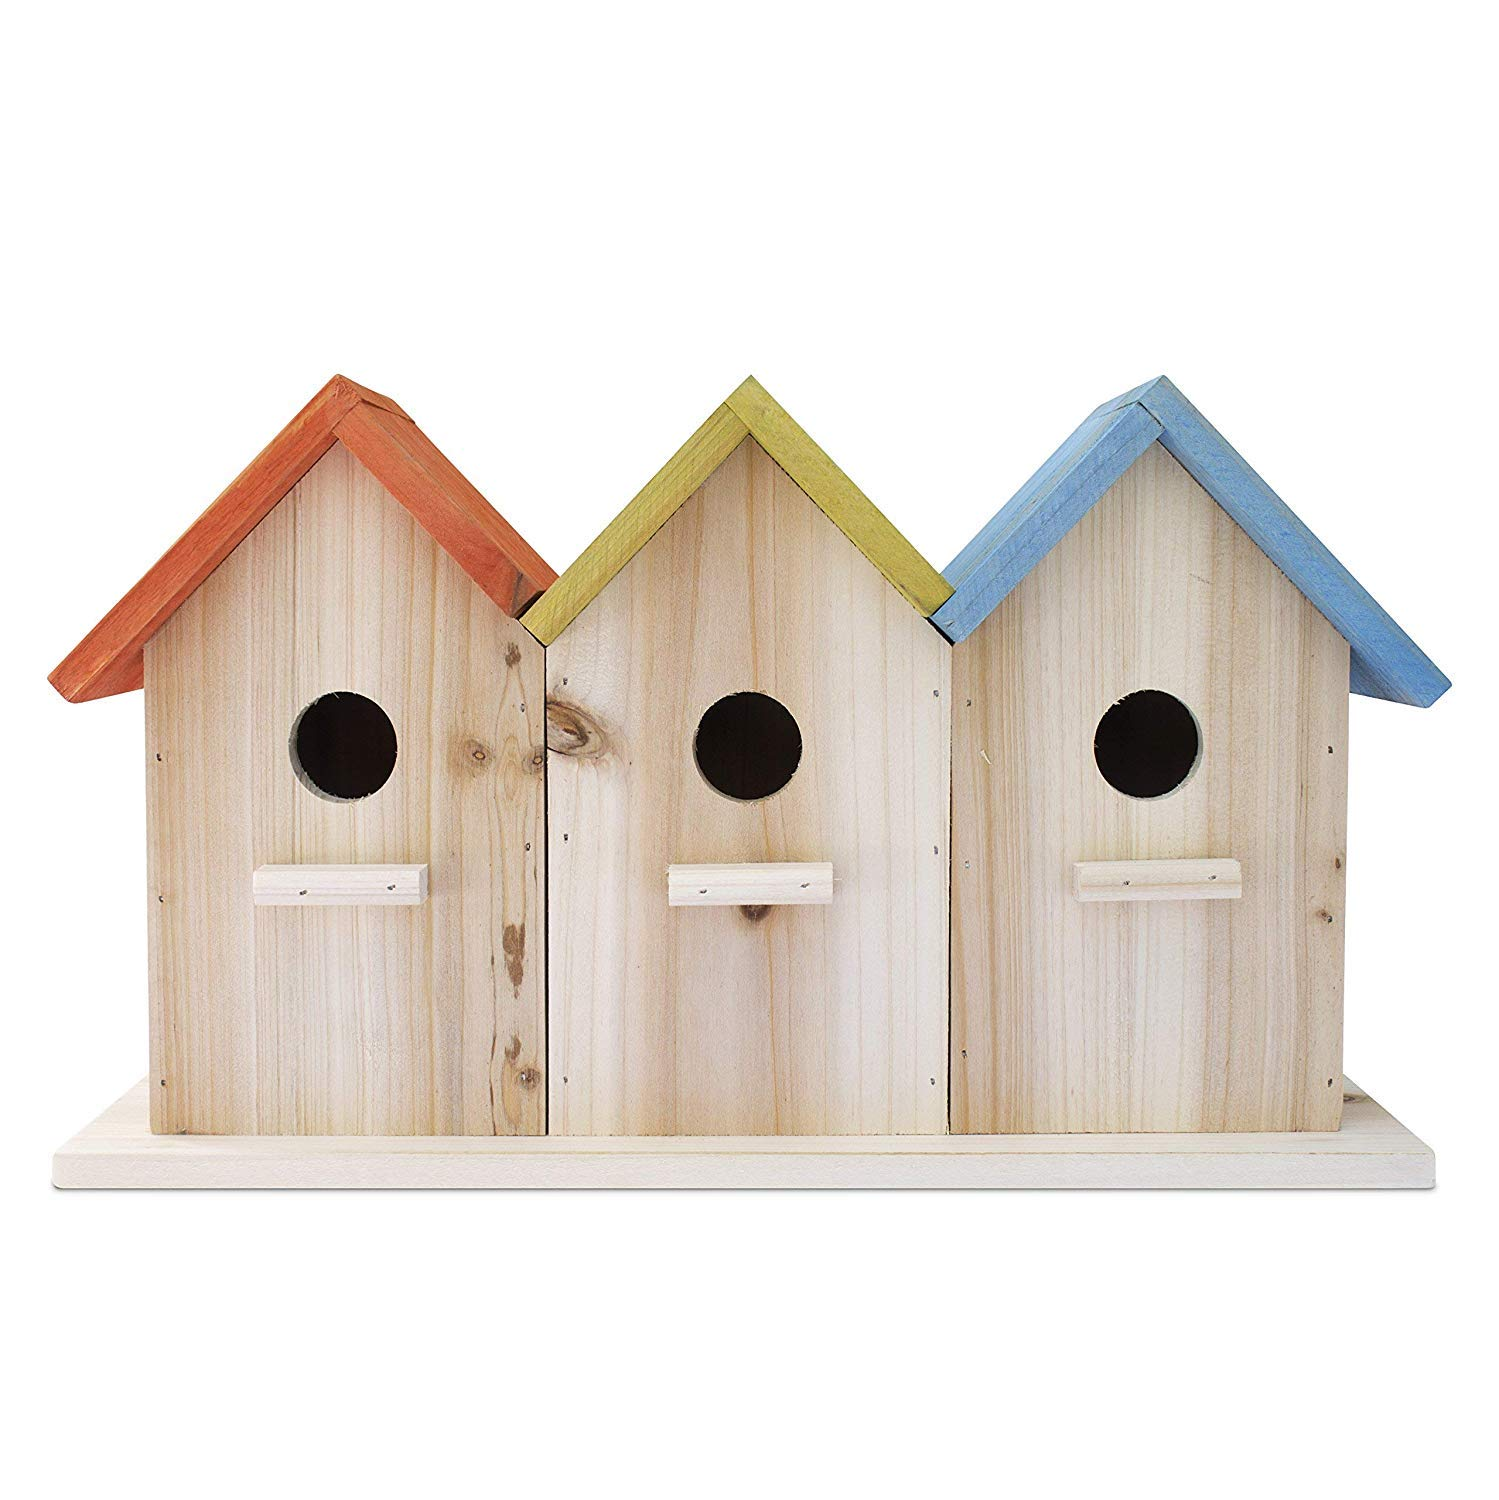 23 Bees 3 Hole Bird House for Outside/Indoors / Hanging | Kits for Children & Adults | Decorative Birdhouse & Home Decoration | Outdoors Feeder for Birds, Bluebirds, Wrens & Chickadees | All Weather